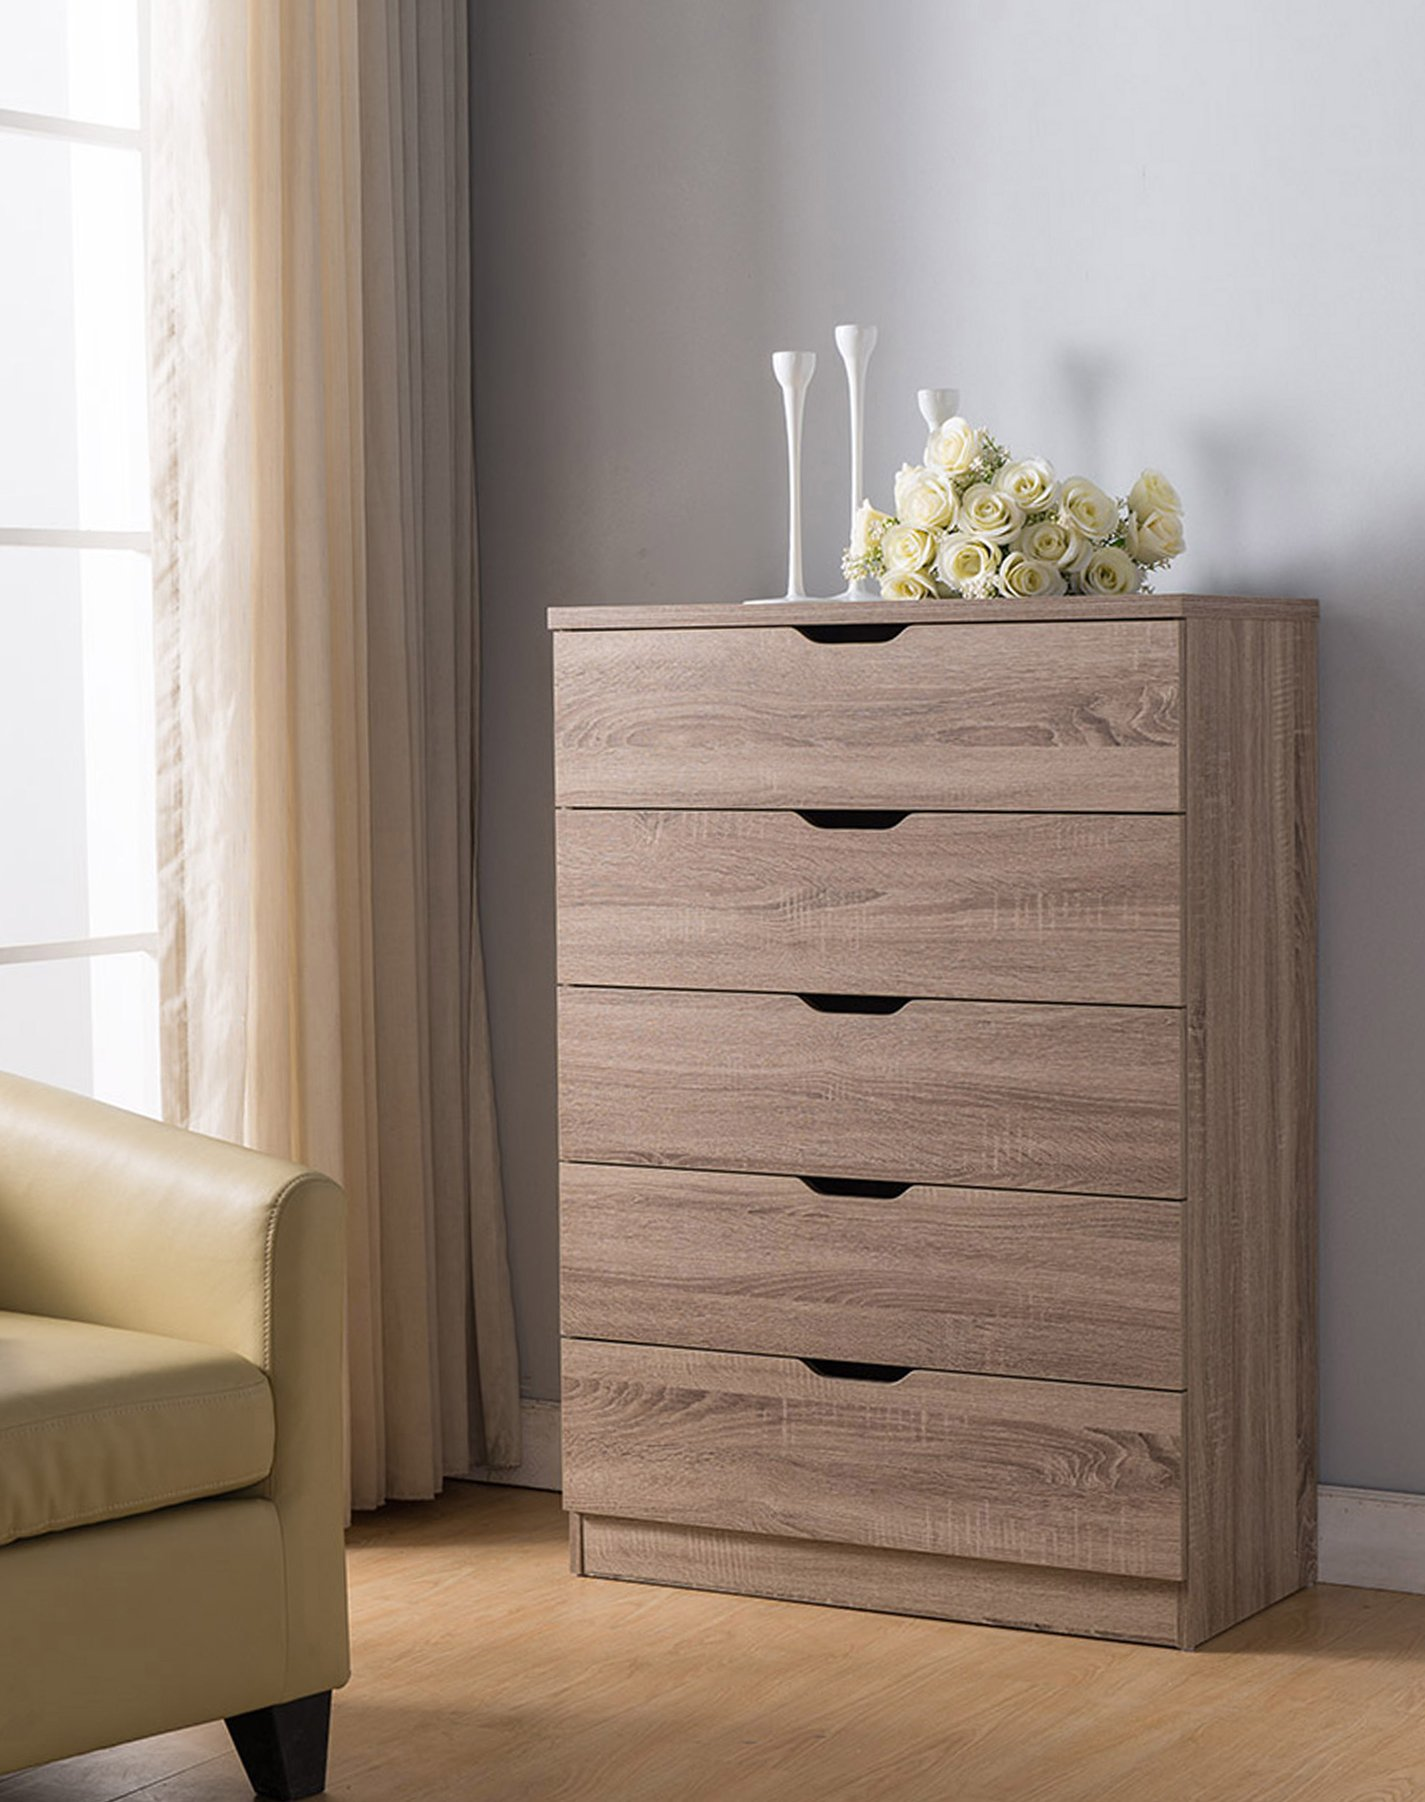 Bedroom Furniture -  -  - 81MZuAeg%2BFL -